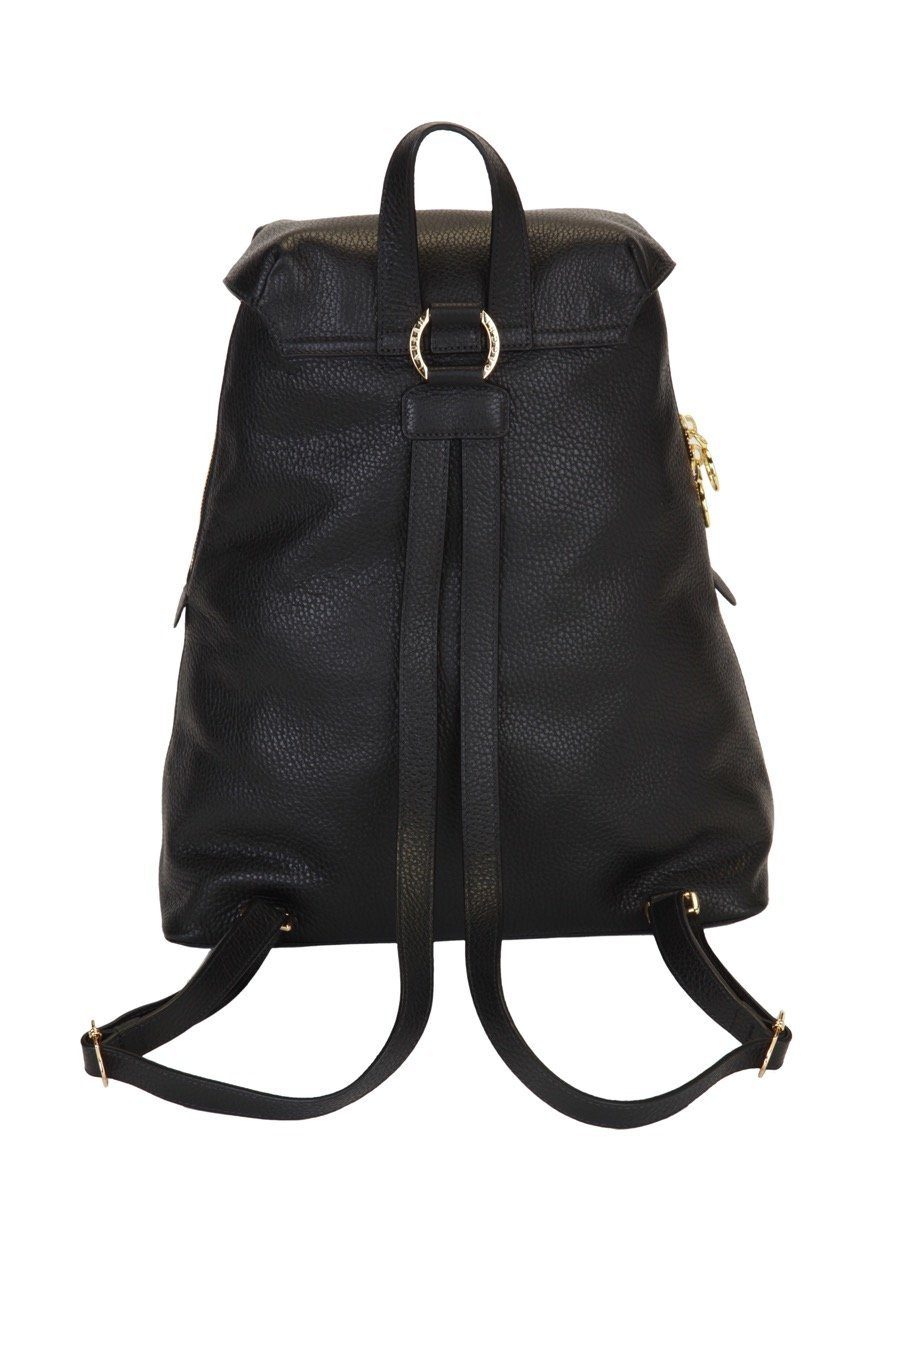 Genuine Italian Leather Bella Backpack - Lauren Cecchi New York - Lipstick Red Interior - Stylish Designer Bag With Adjustable Shoulder Straps by Lauren Cecchi New York (Image #3)